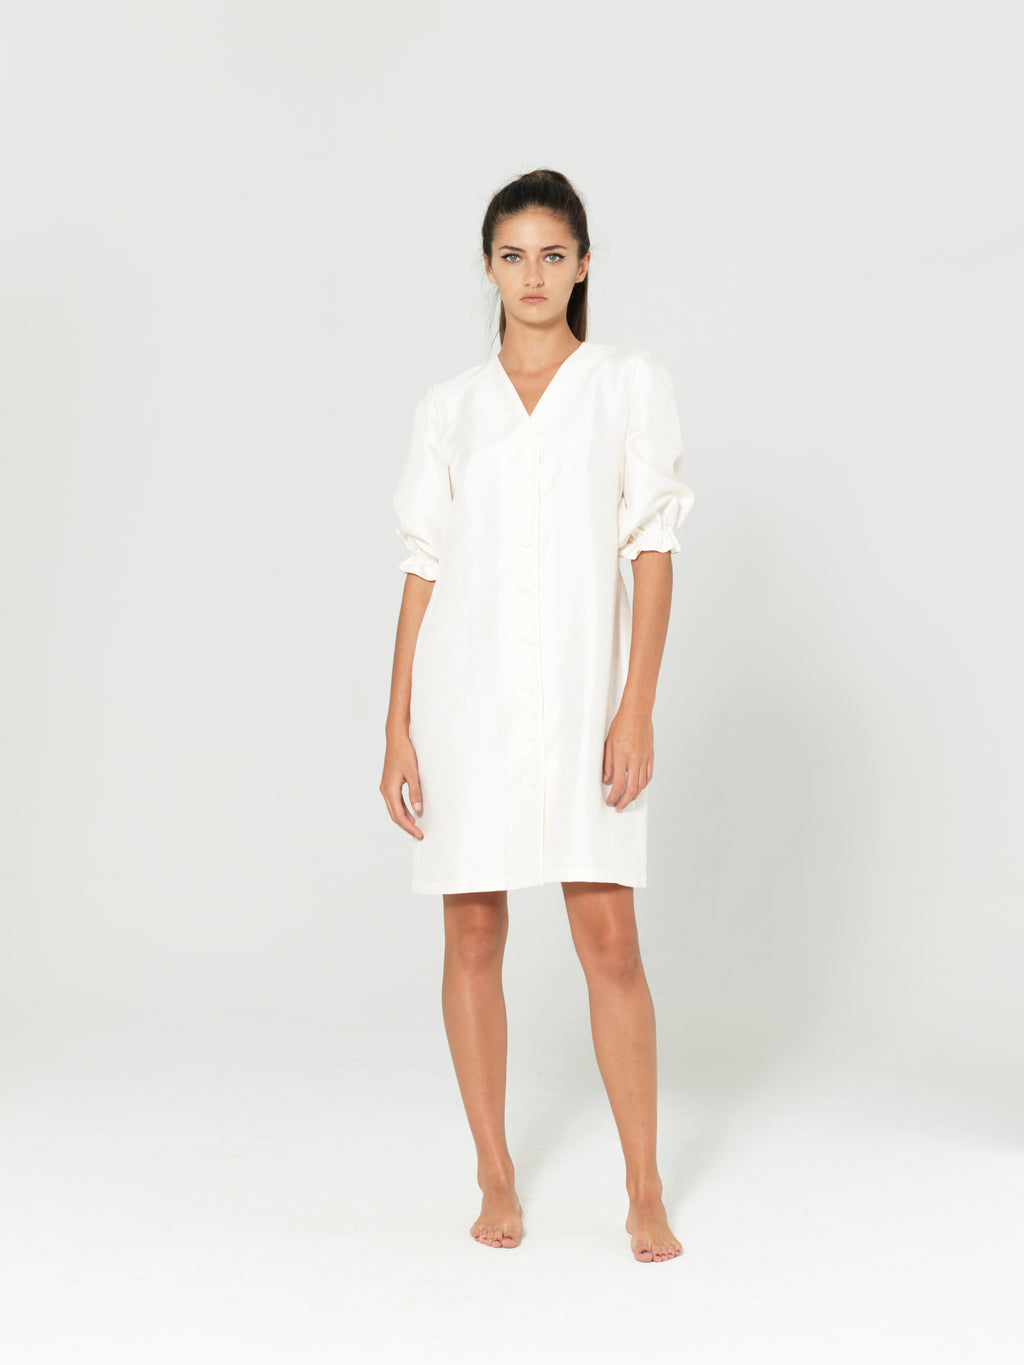 WHITE SHIRT MONICA DRESS